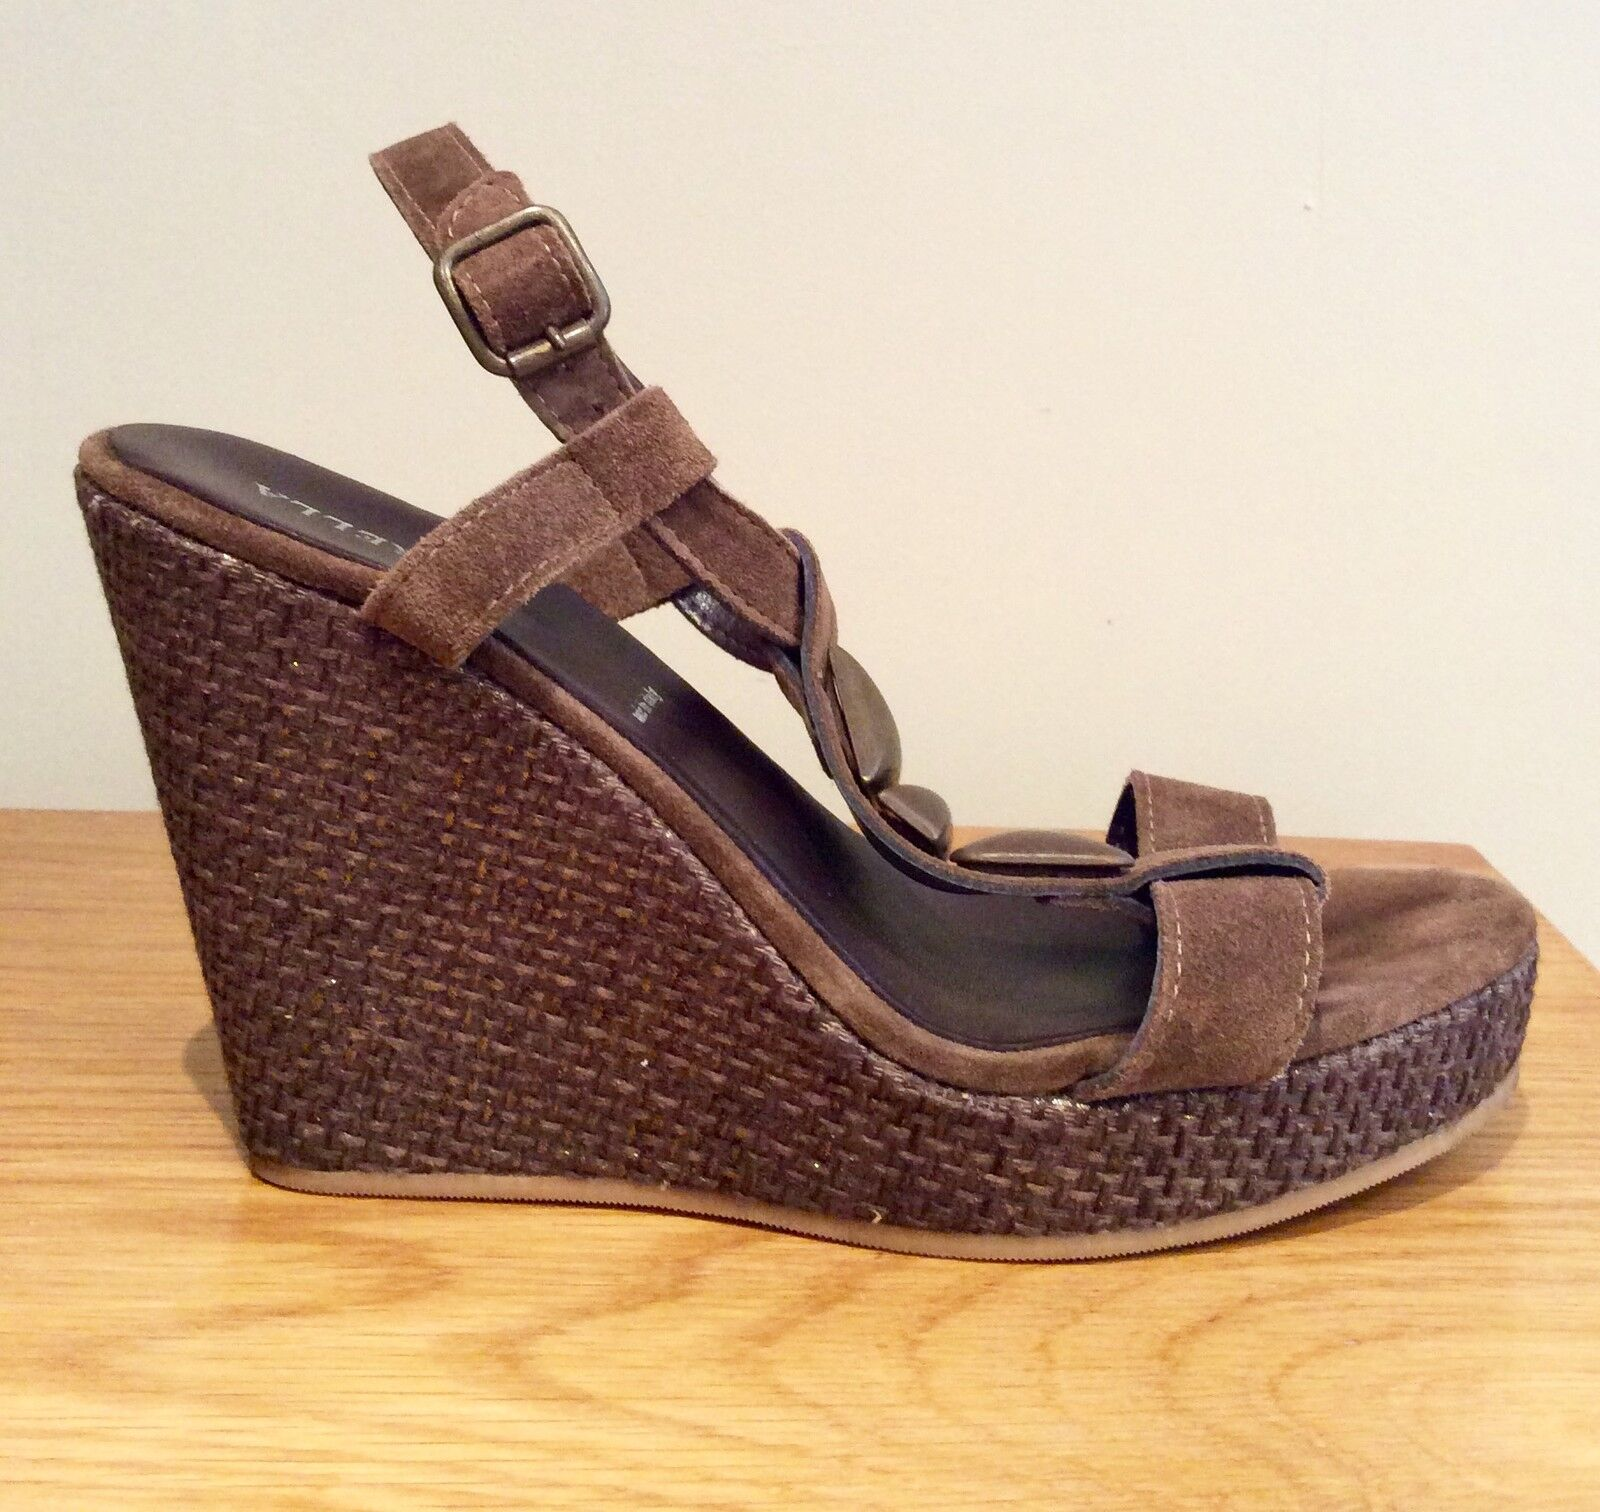 MARELLA by MAXMARA  WEDGE SHOES BROWN SIZE 37 LEATHER SUEDE